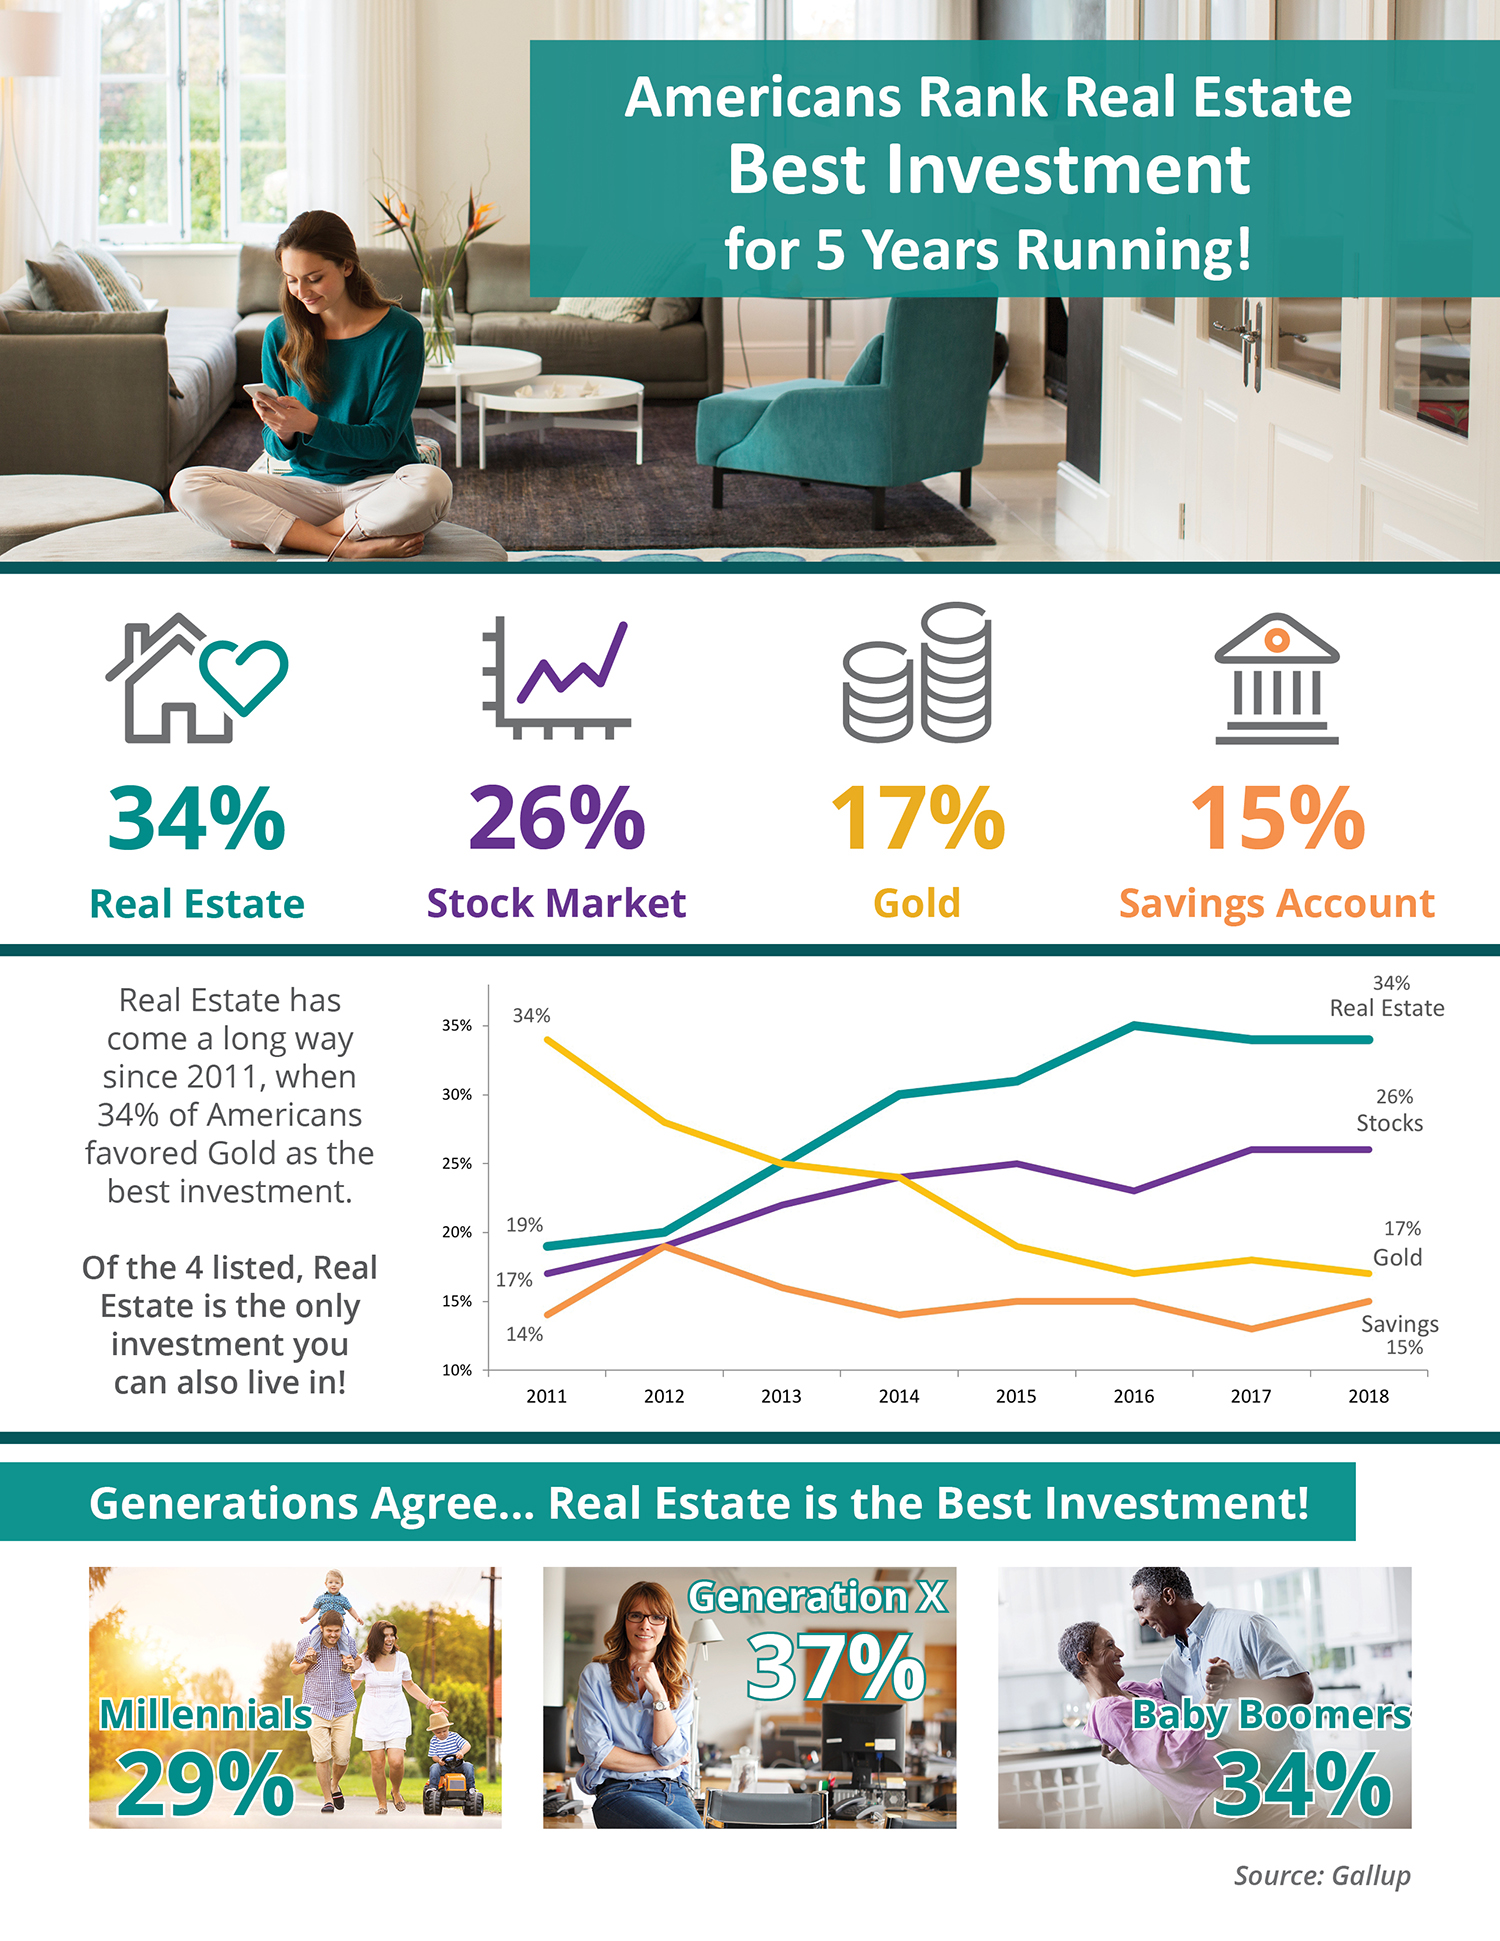 Americans Rank Real Estate Best Investment for 5 Years Running! [INFOGRAPHIC] | Bridge Builders